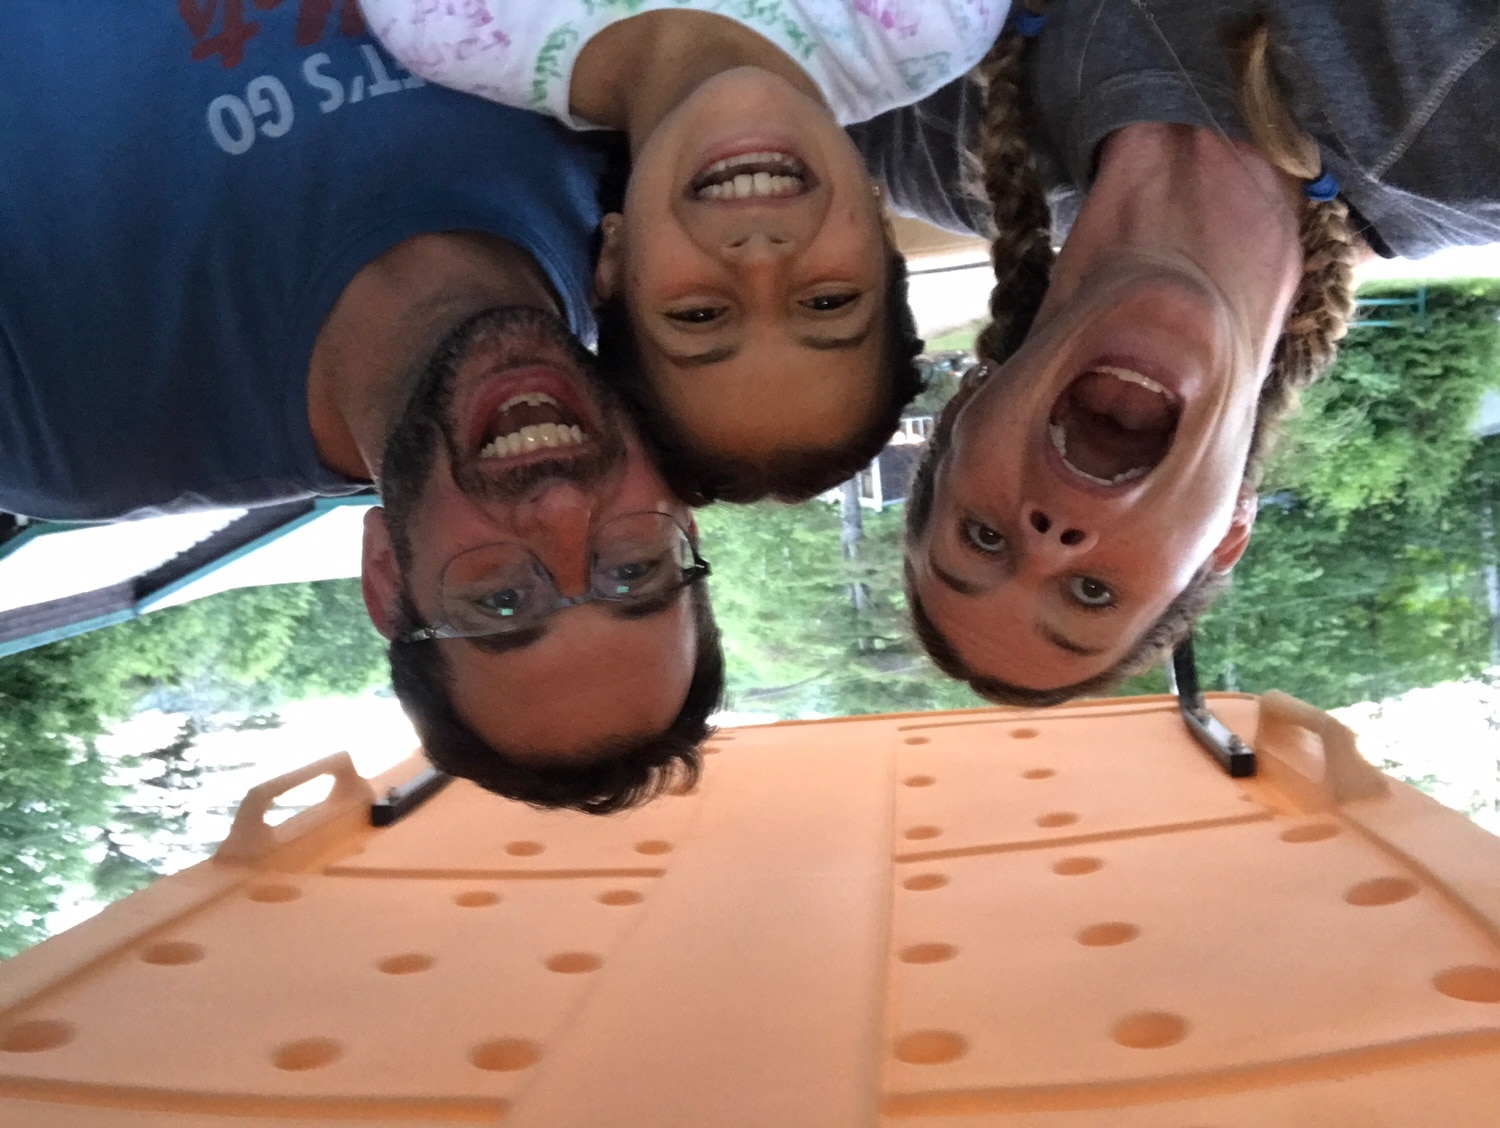 three people with crazy faces smiling upside down